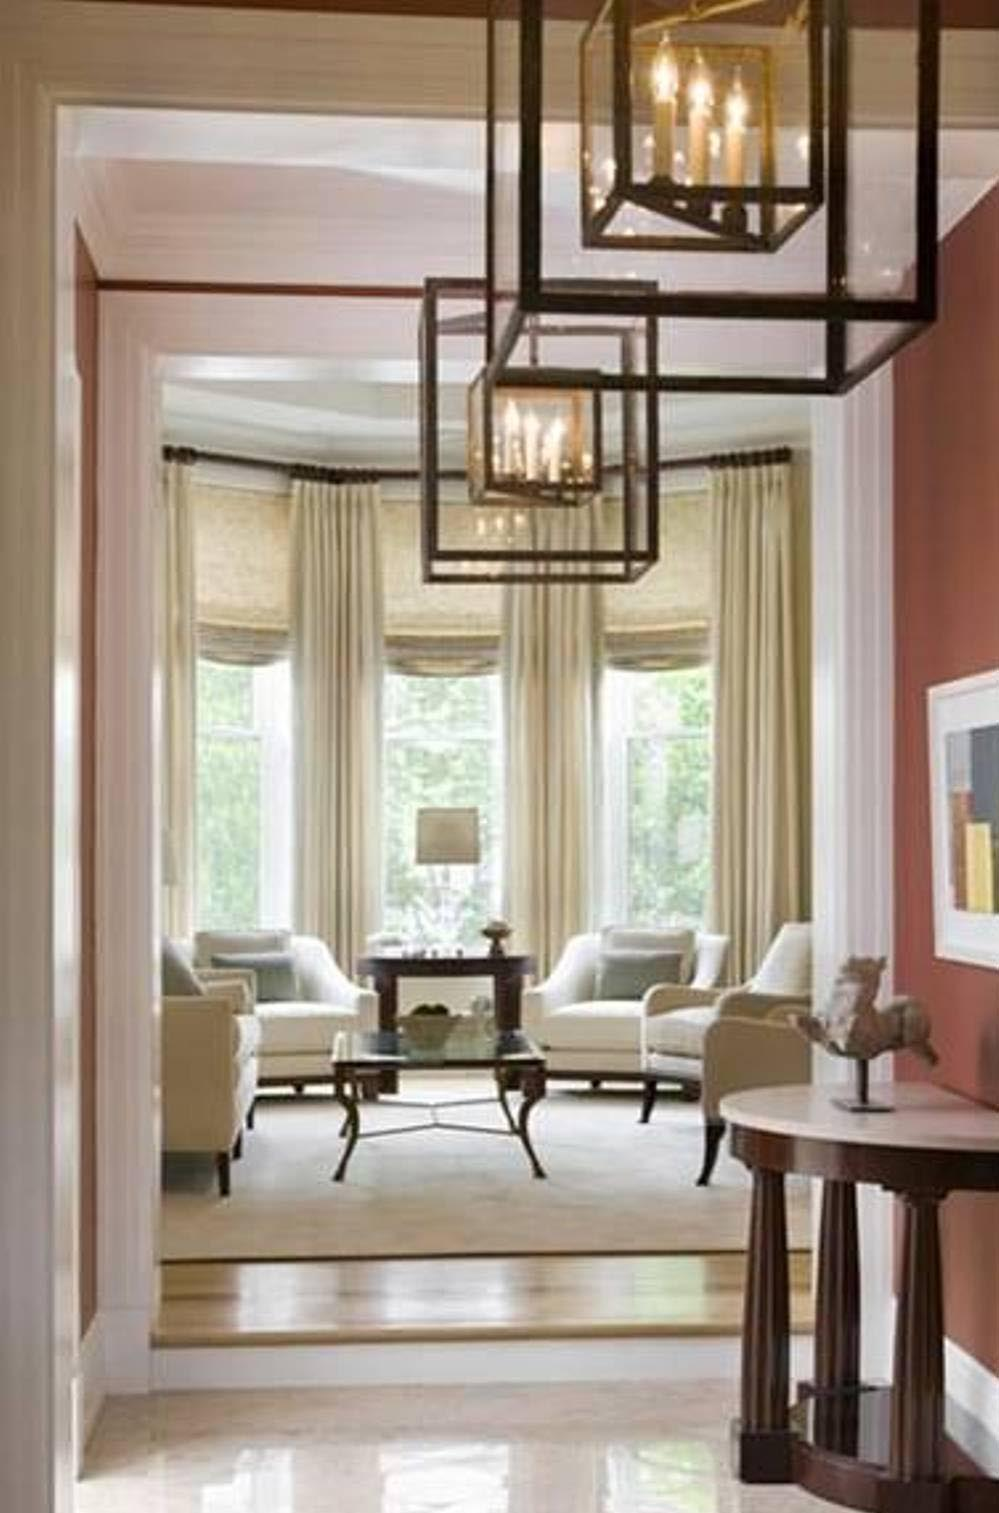 Foyer Lighting Fixtures : Foyer pendant light fixture fixtures design ideas